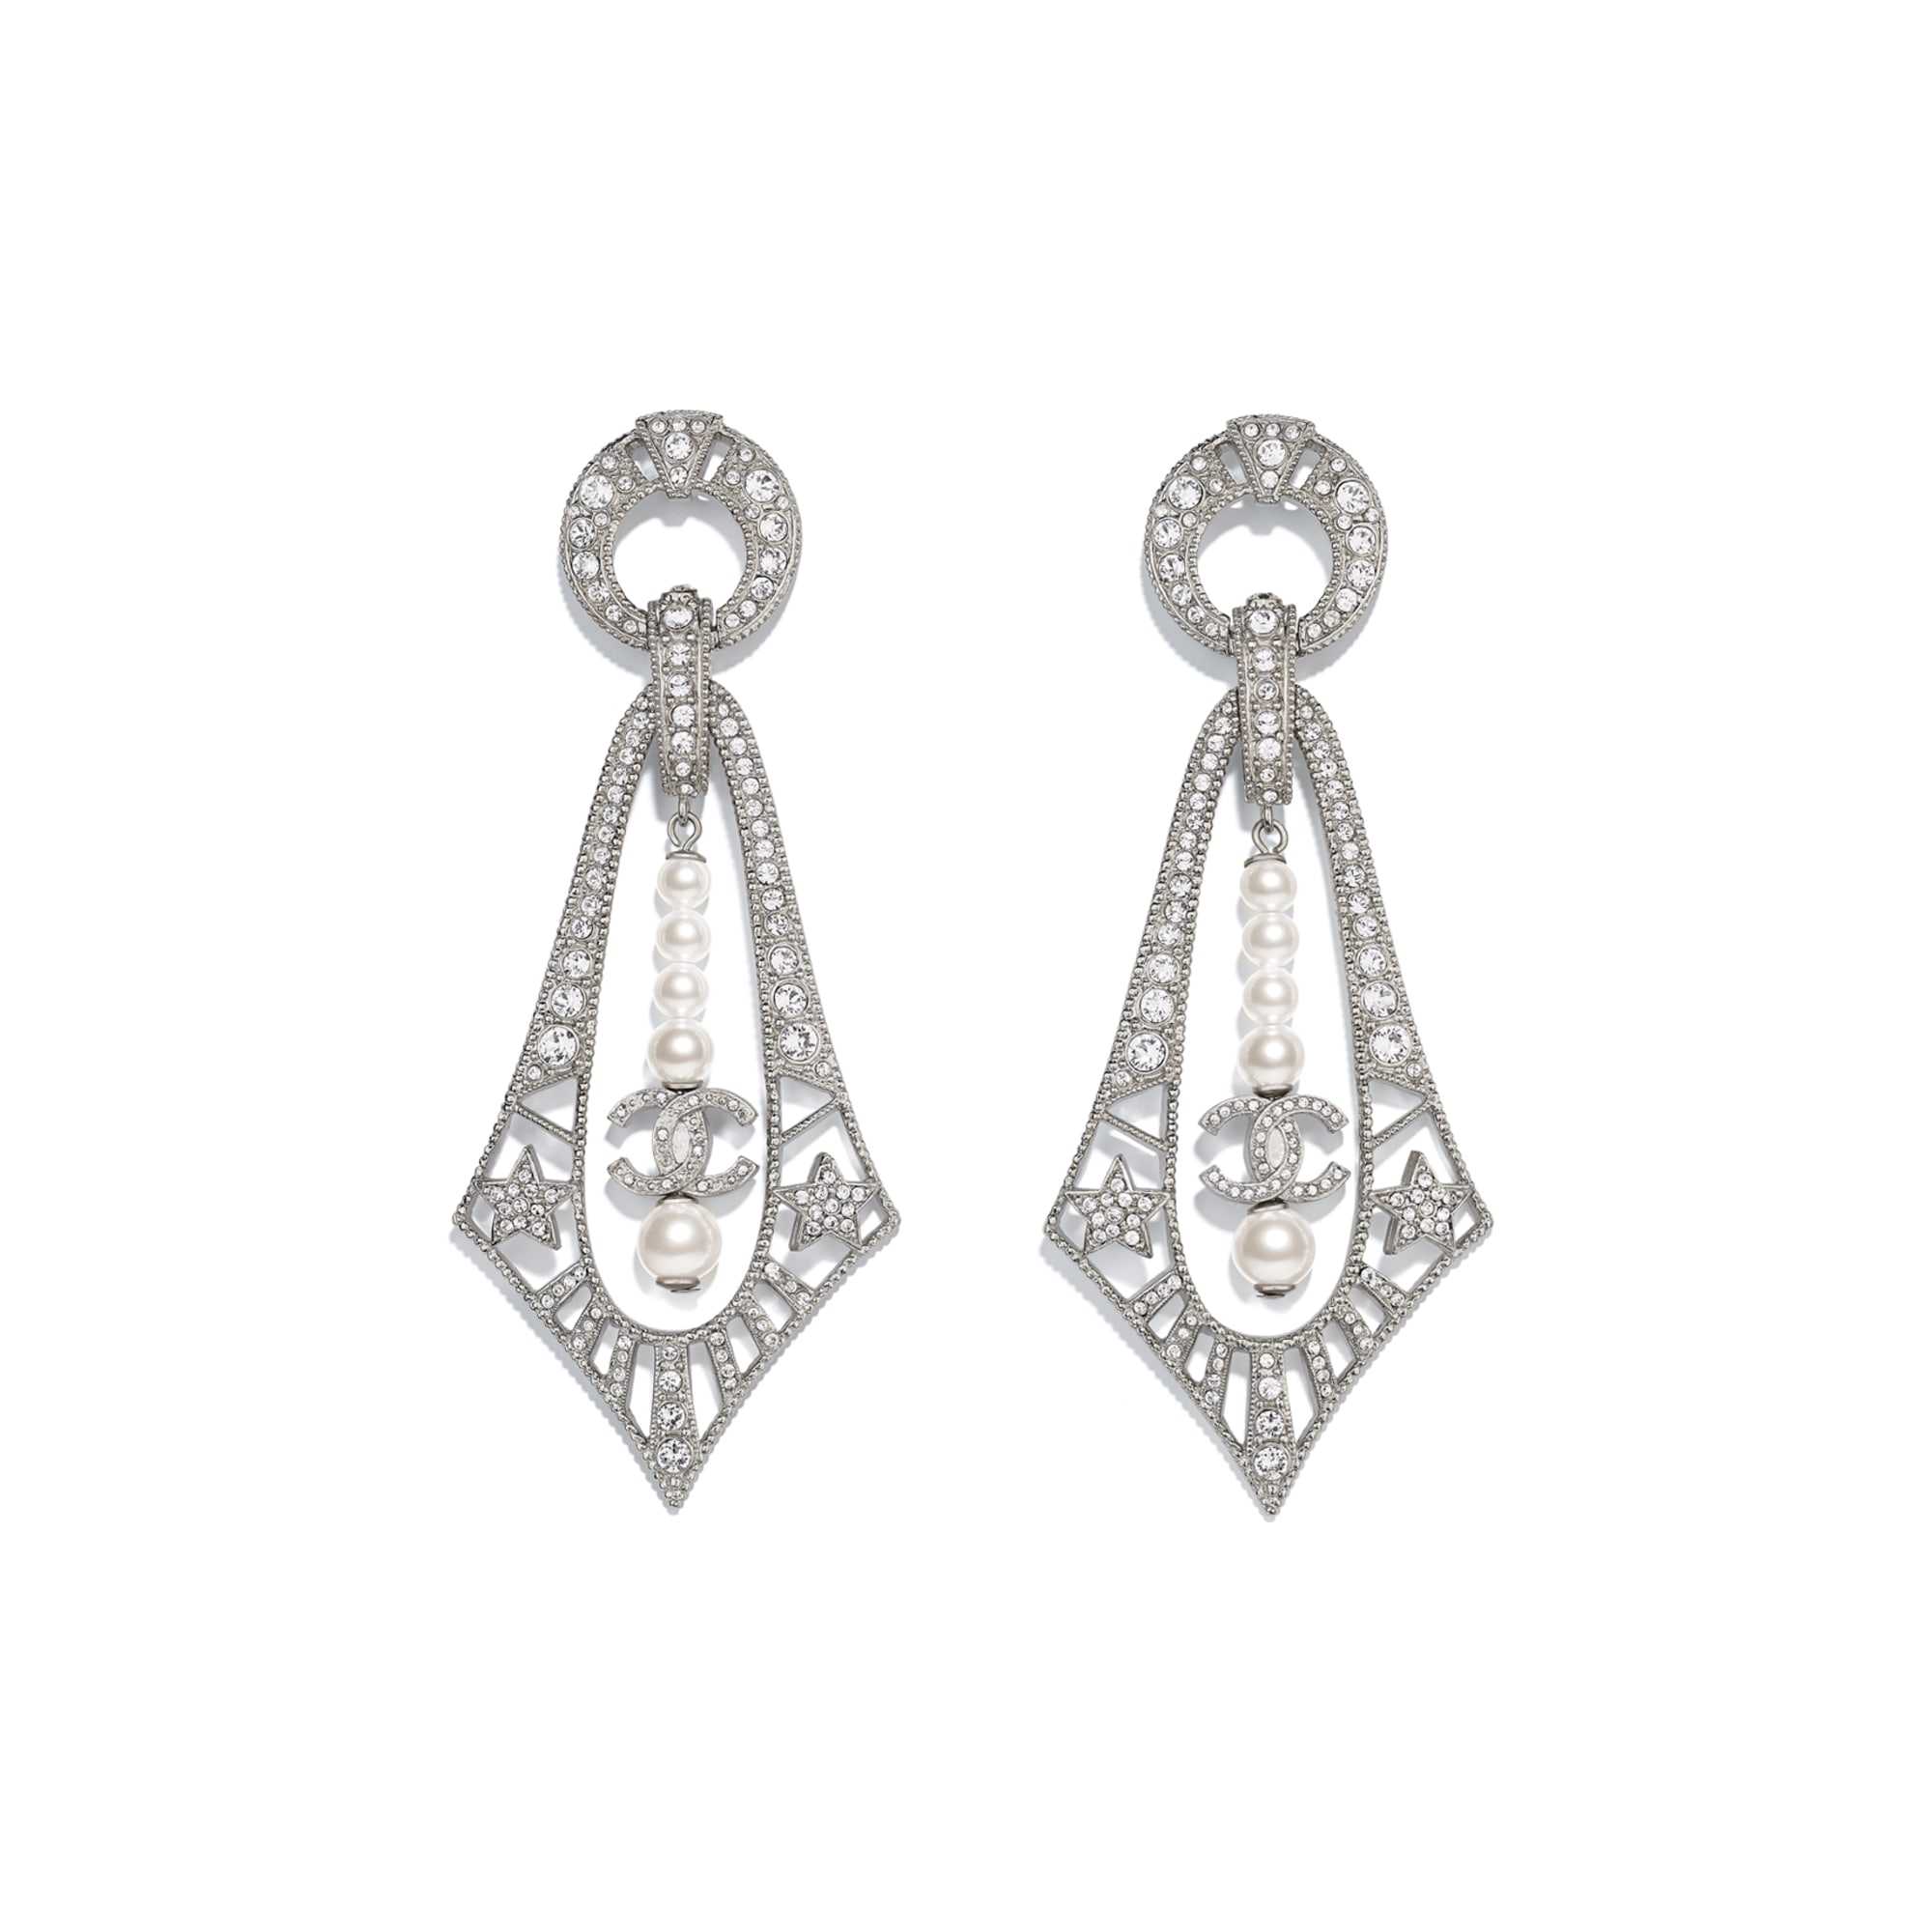 Earrings - Silver, Pearly White & Crystal - Metal, Glass Pearls & Strass - CHANEL - Default view - see standard sized version